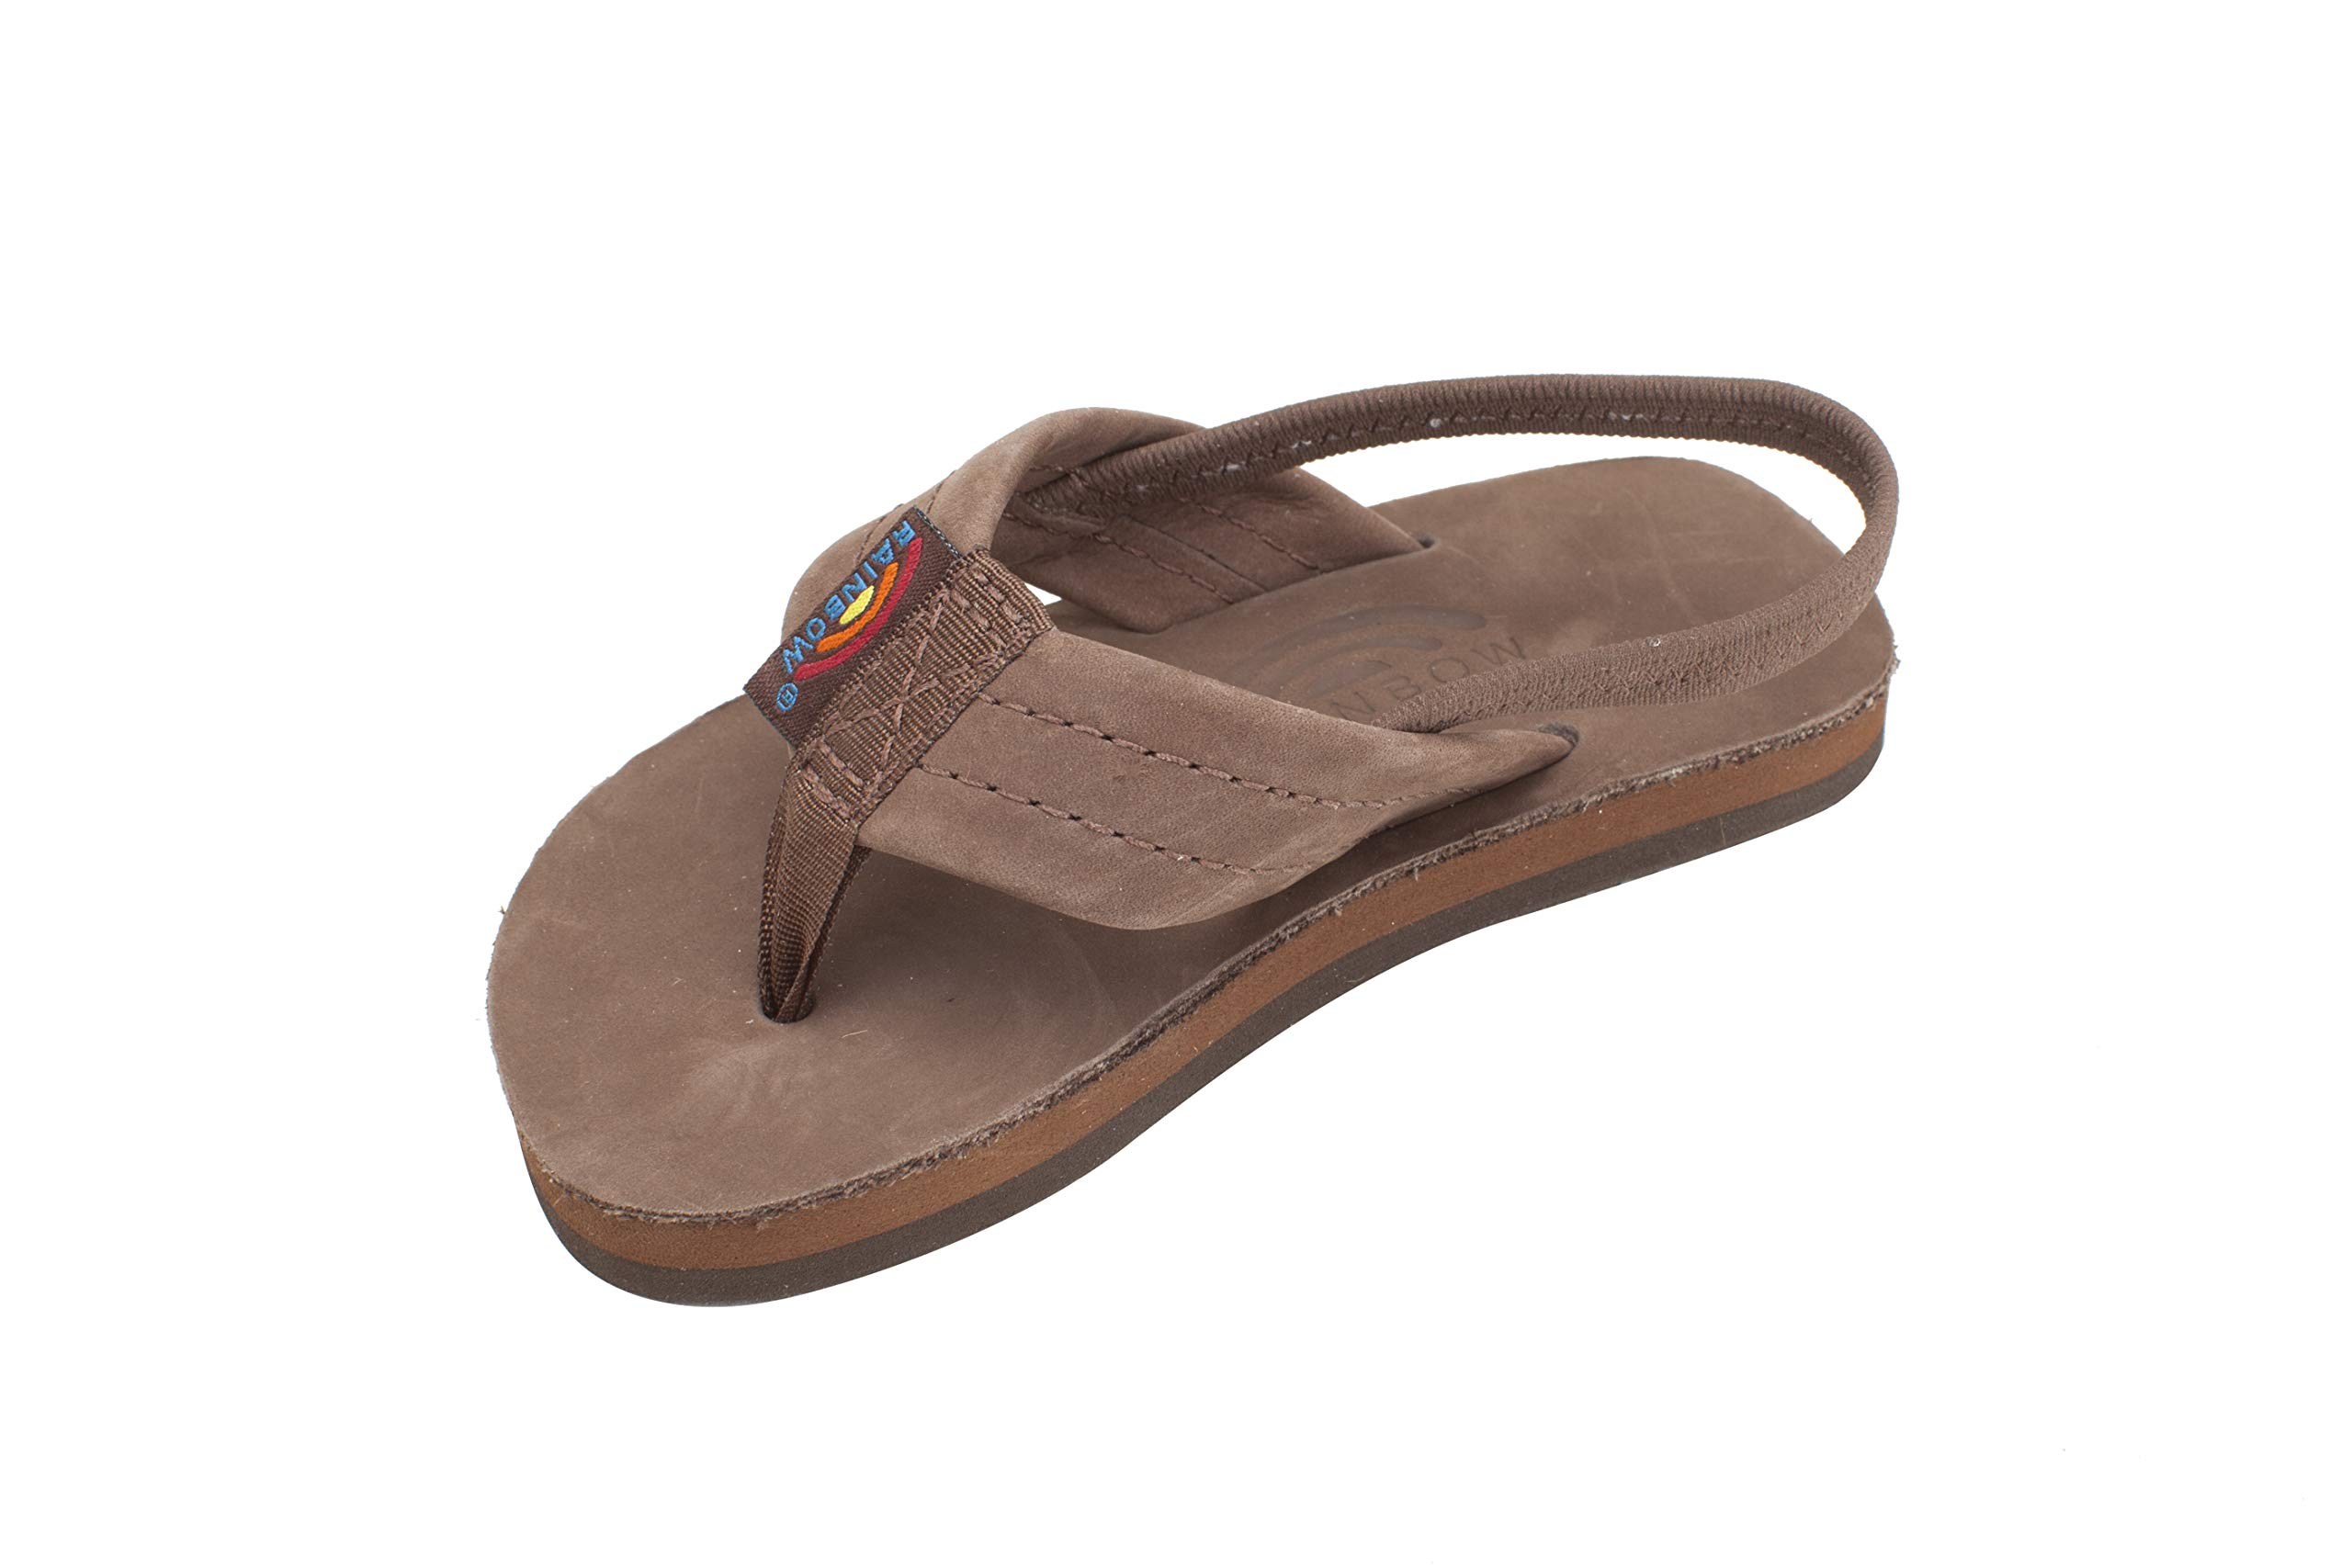 Rainbow Sandals Kid's Single Layer Premier Leather Expresso, Toddler 7-8 B(M) US